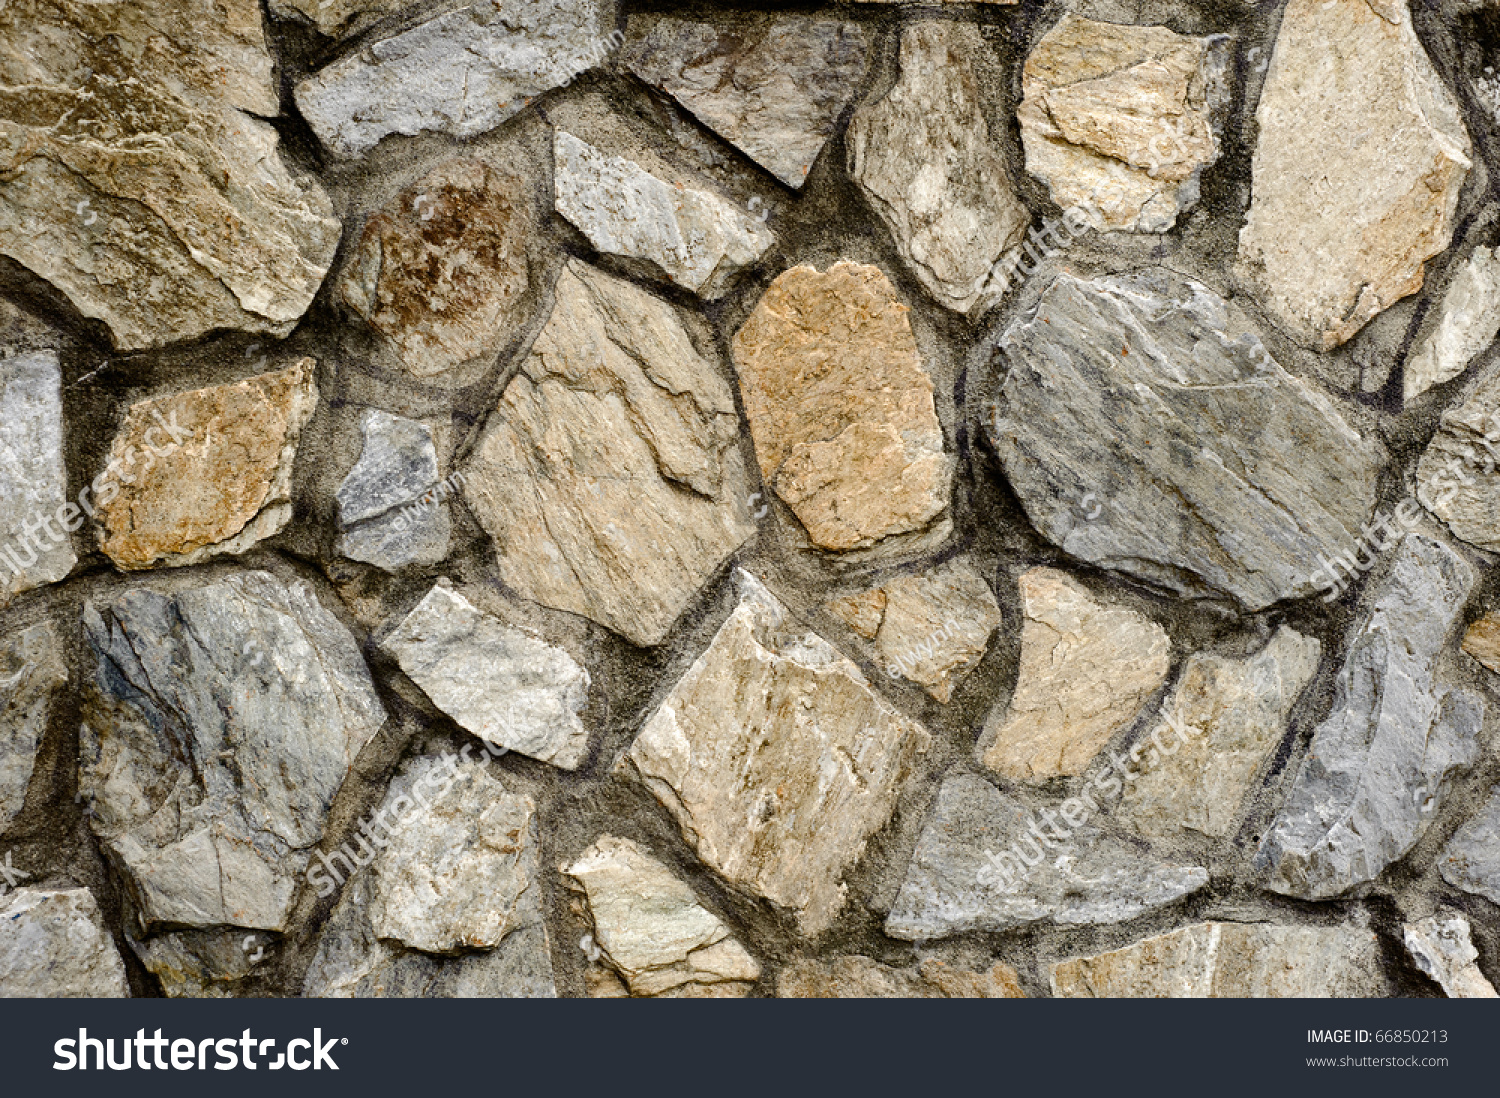 Stone wall exterior background with good texture stock for Exterior background